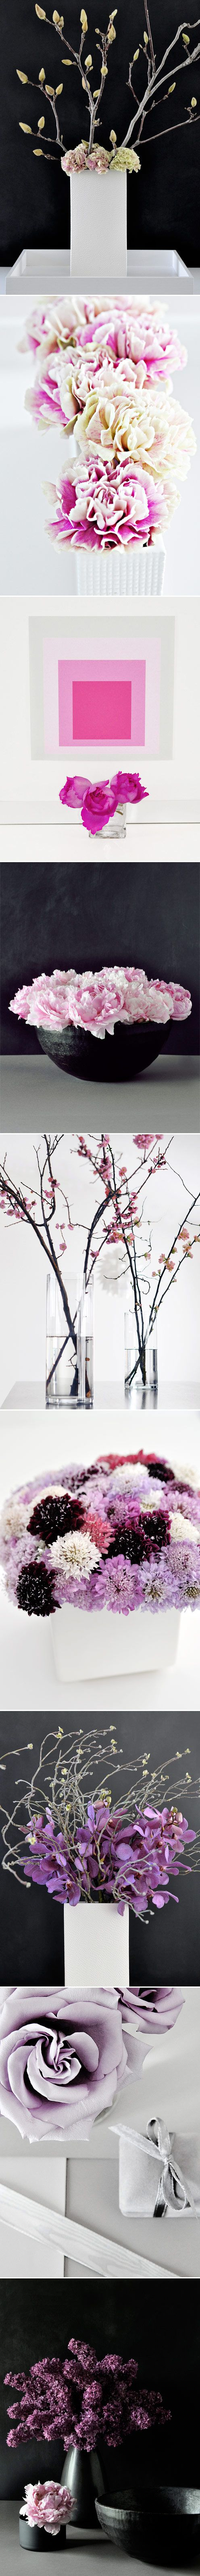 :: DETAILS :: adore the talent of designer Michelle Wentworth behind Mo+Mo Living ... always a lovely well curated source of inspiration. #details #minimalWell Curator, Curator Sources, Design Michelle, Michelle Wentworth, Flower Arrangements, Momo, Flower Ideas, Details Minimal, Mo Mo Living